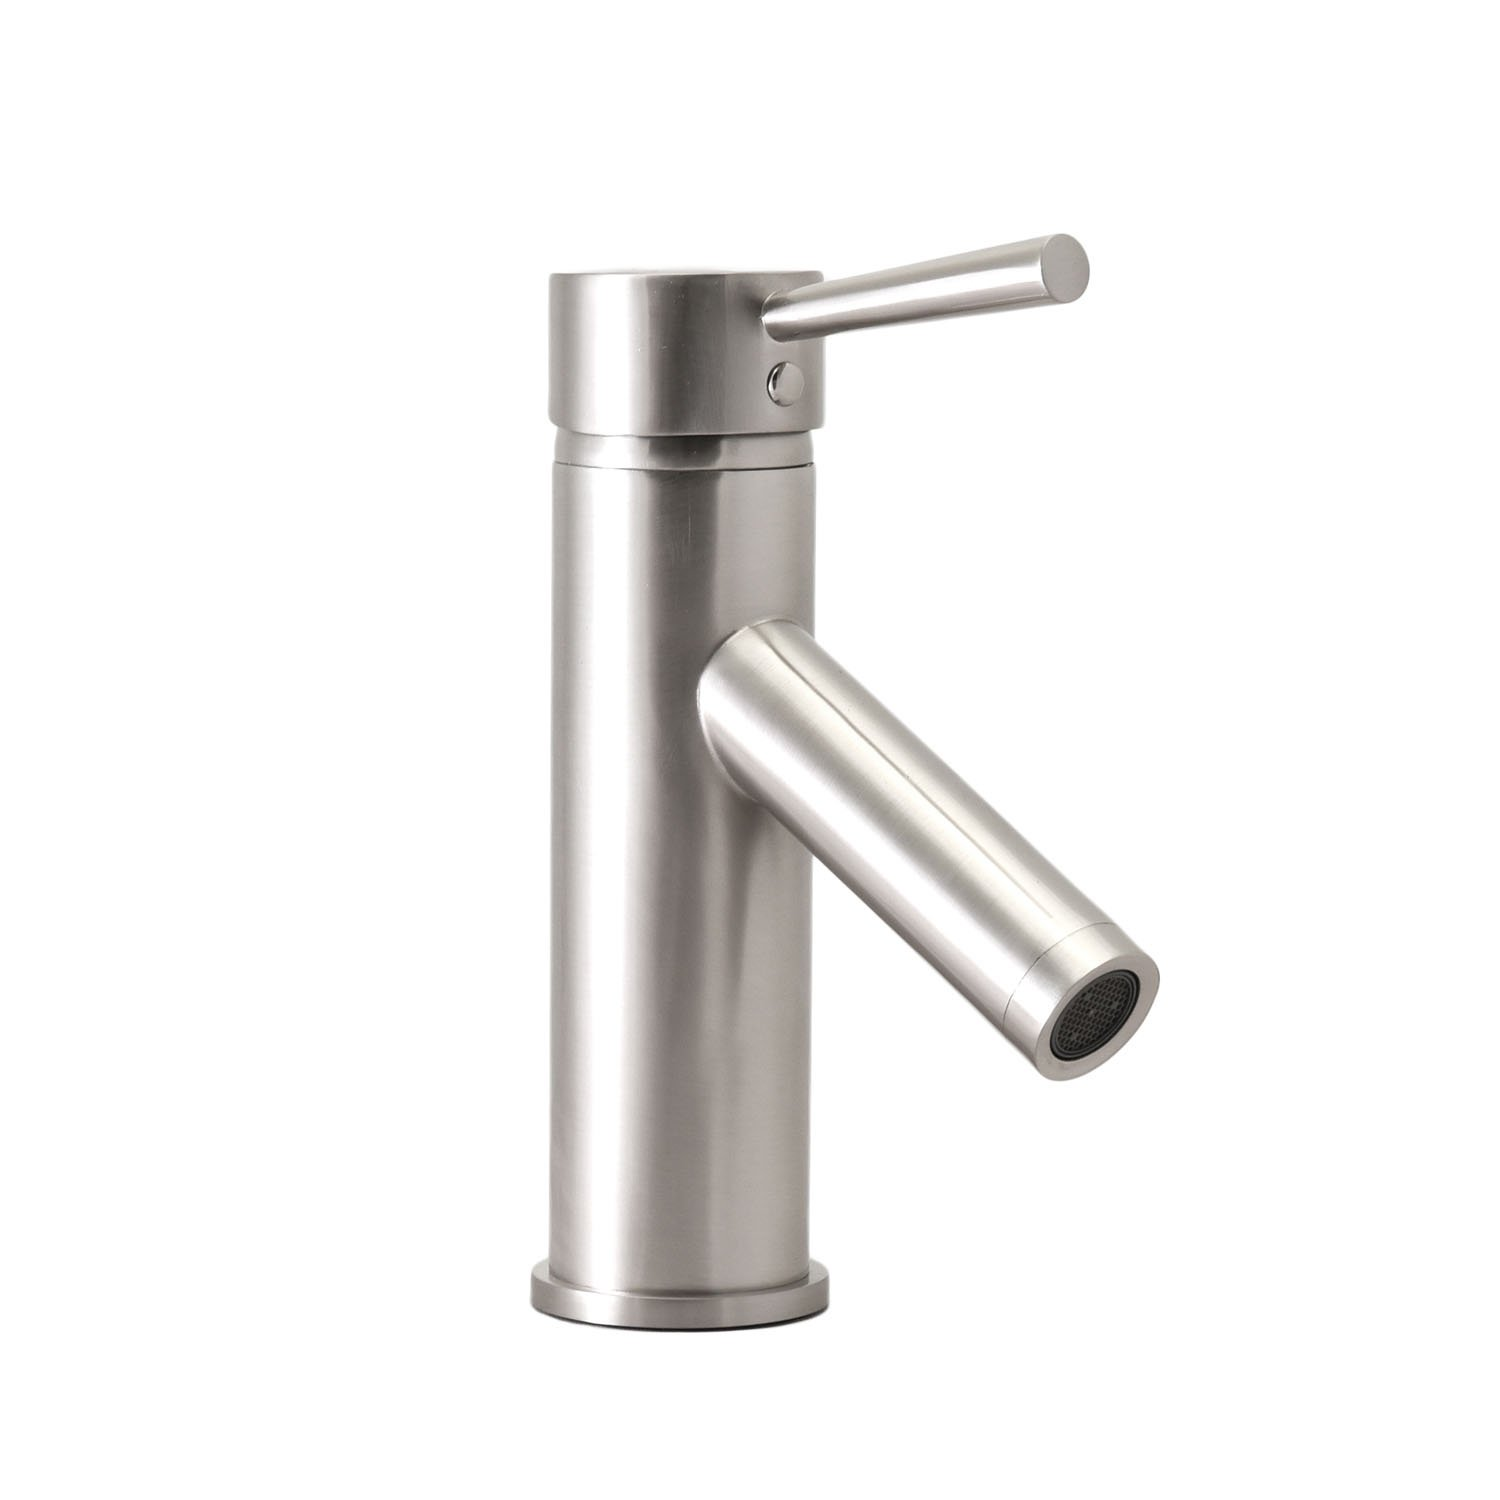 Virtu USA PS-103-BN Bathroom Faucet Single Handle, Brushed Nickel